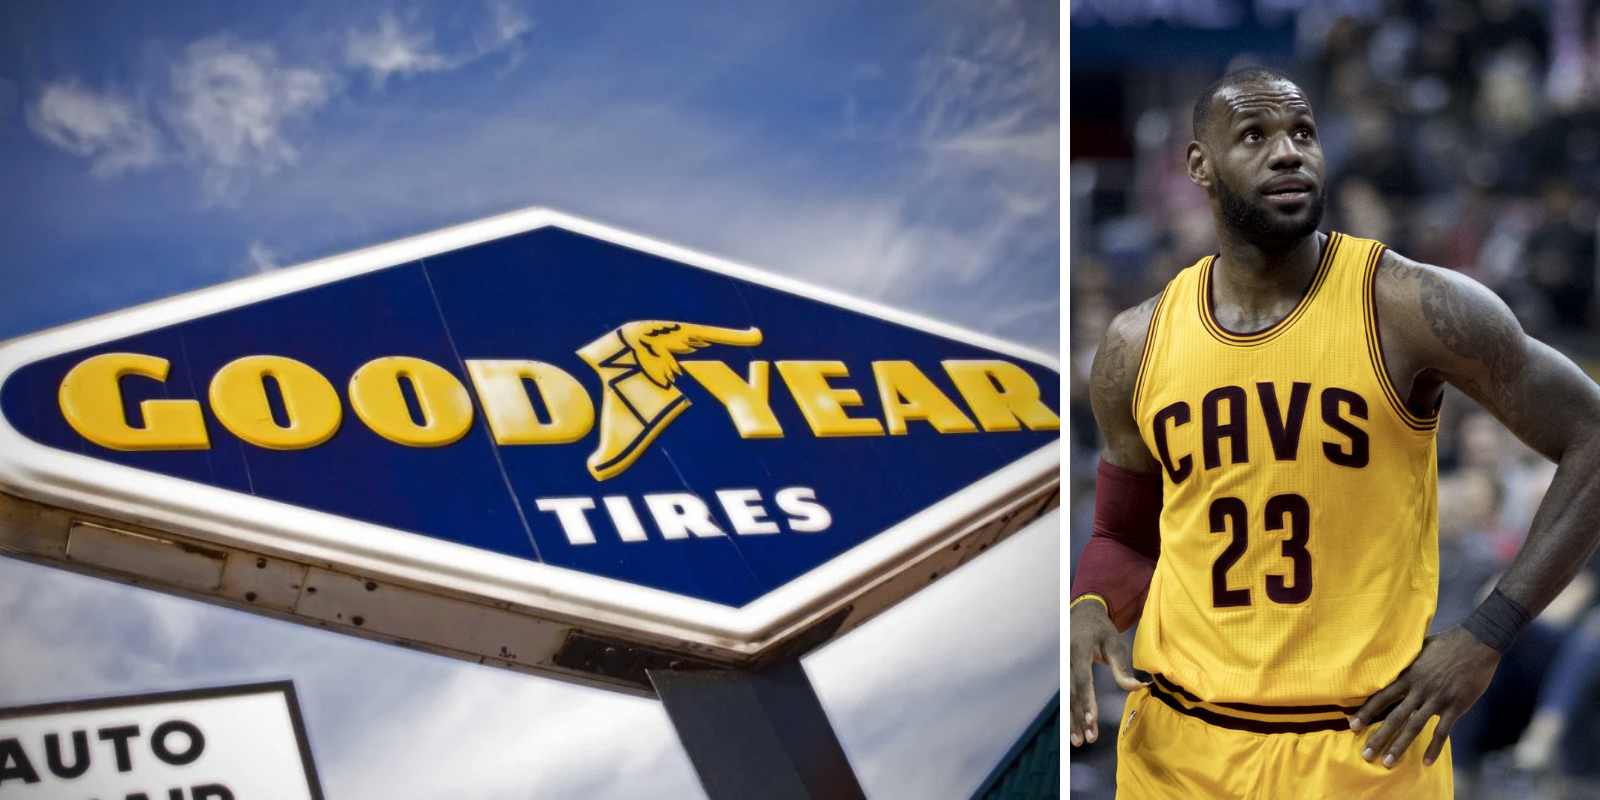 LeBron James weighs in on Goodyear controversy: 'We don't bend, fold or break for nobody' (except China)